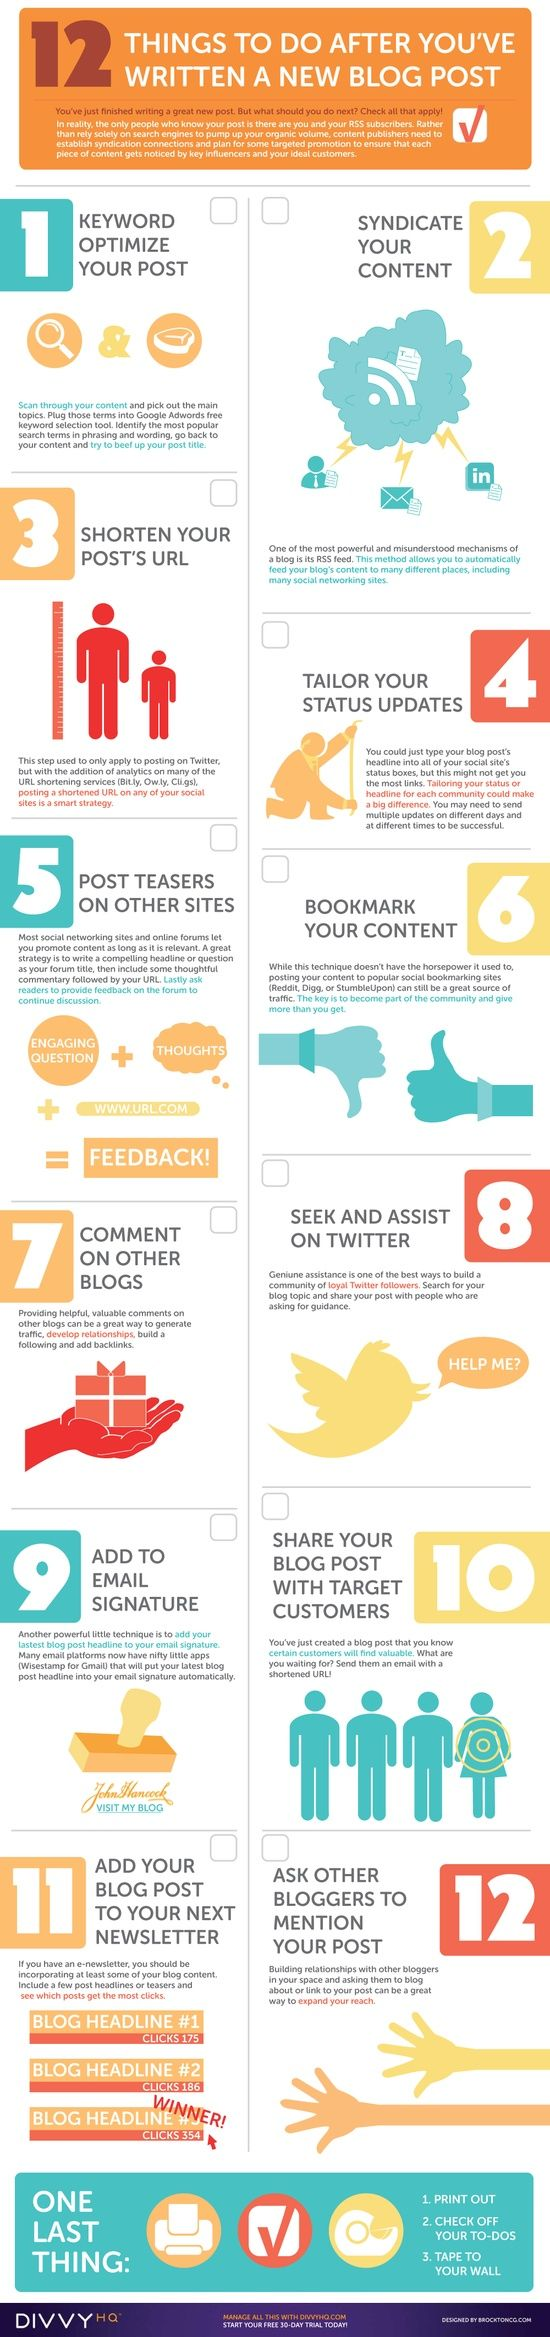 1000+ images about Google Stuff & SEO on Pinterest.